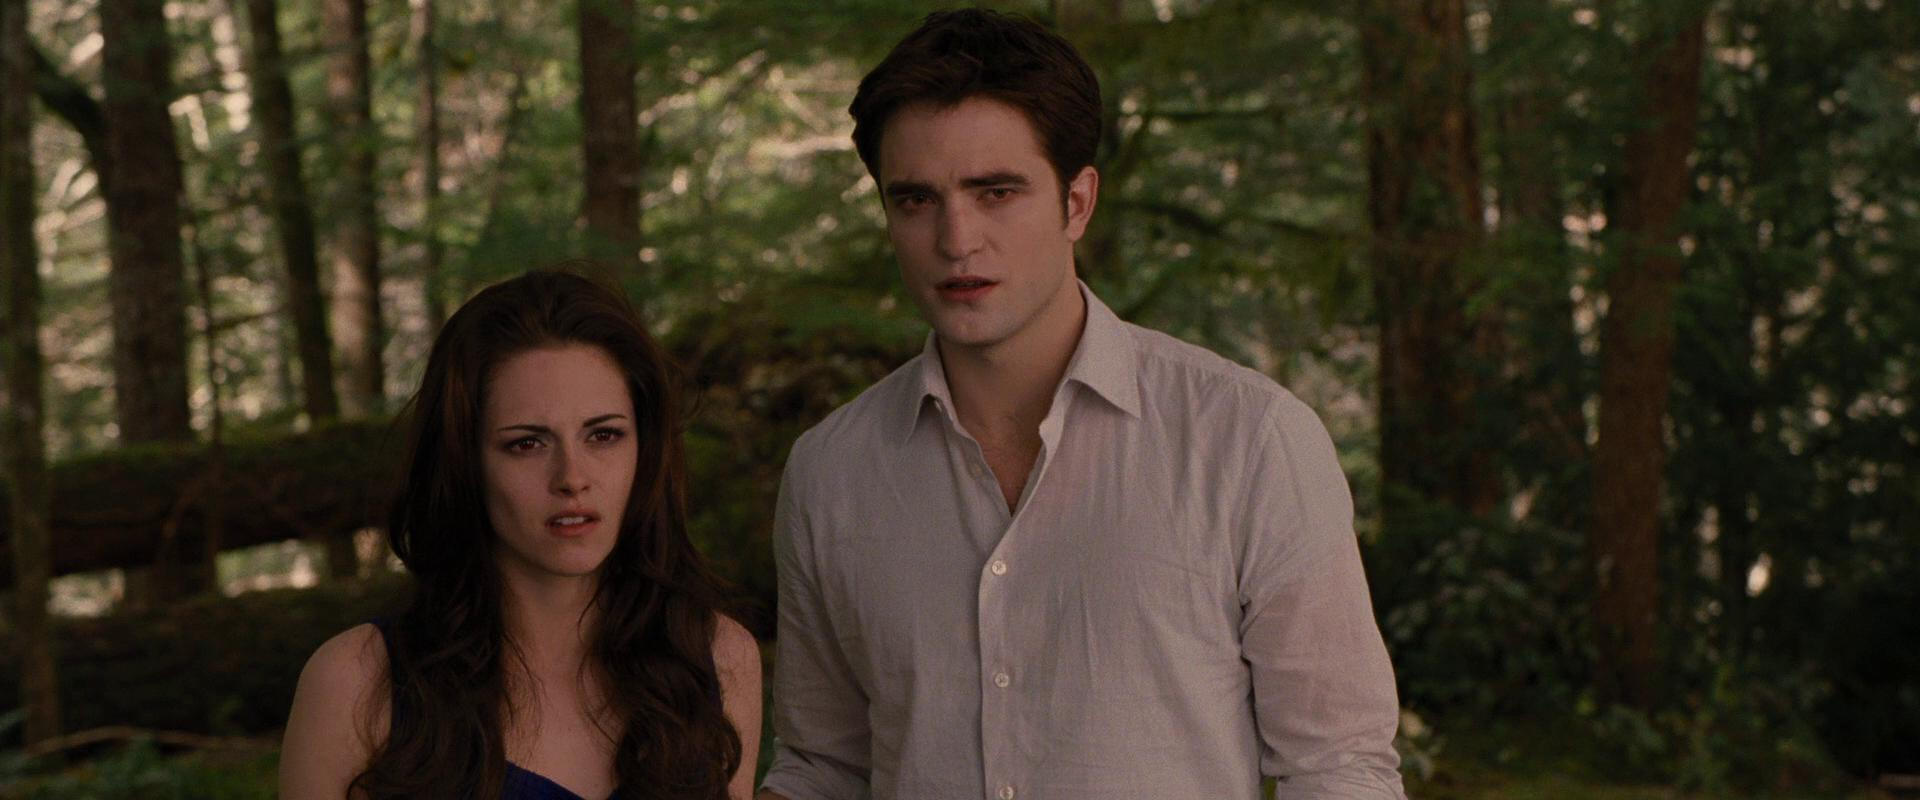 the twilight saga breaking dawn part 2 movie download